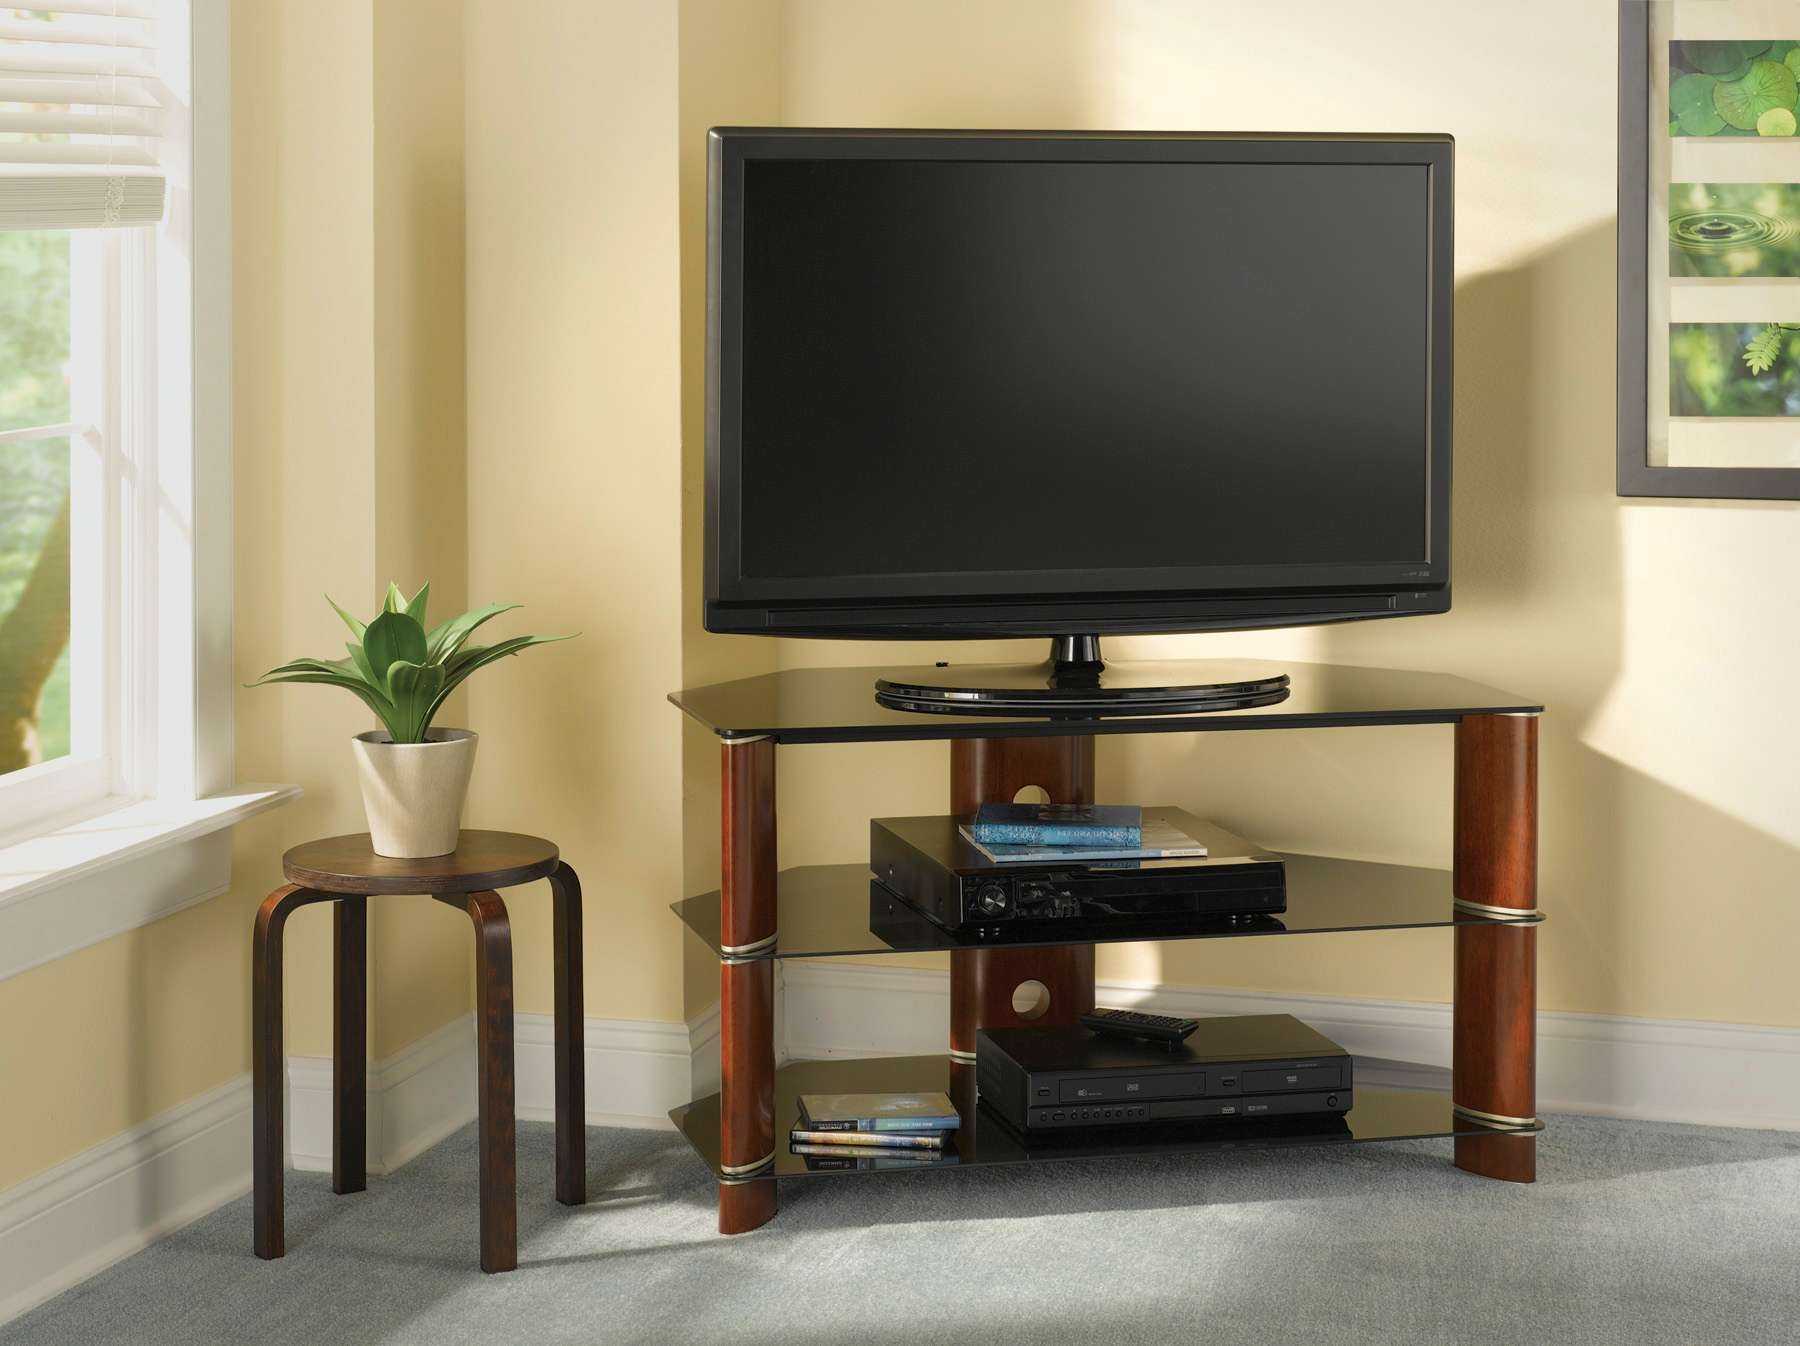 Outstanding Modern Corner Tv Stand And Contemporary Trends Images With Regard To Tv Stands For Corners (View 14 of 20)